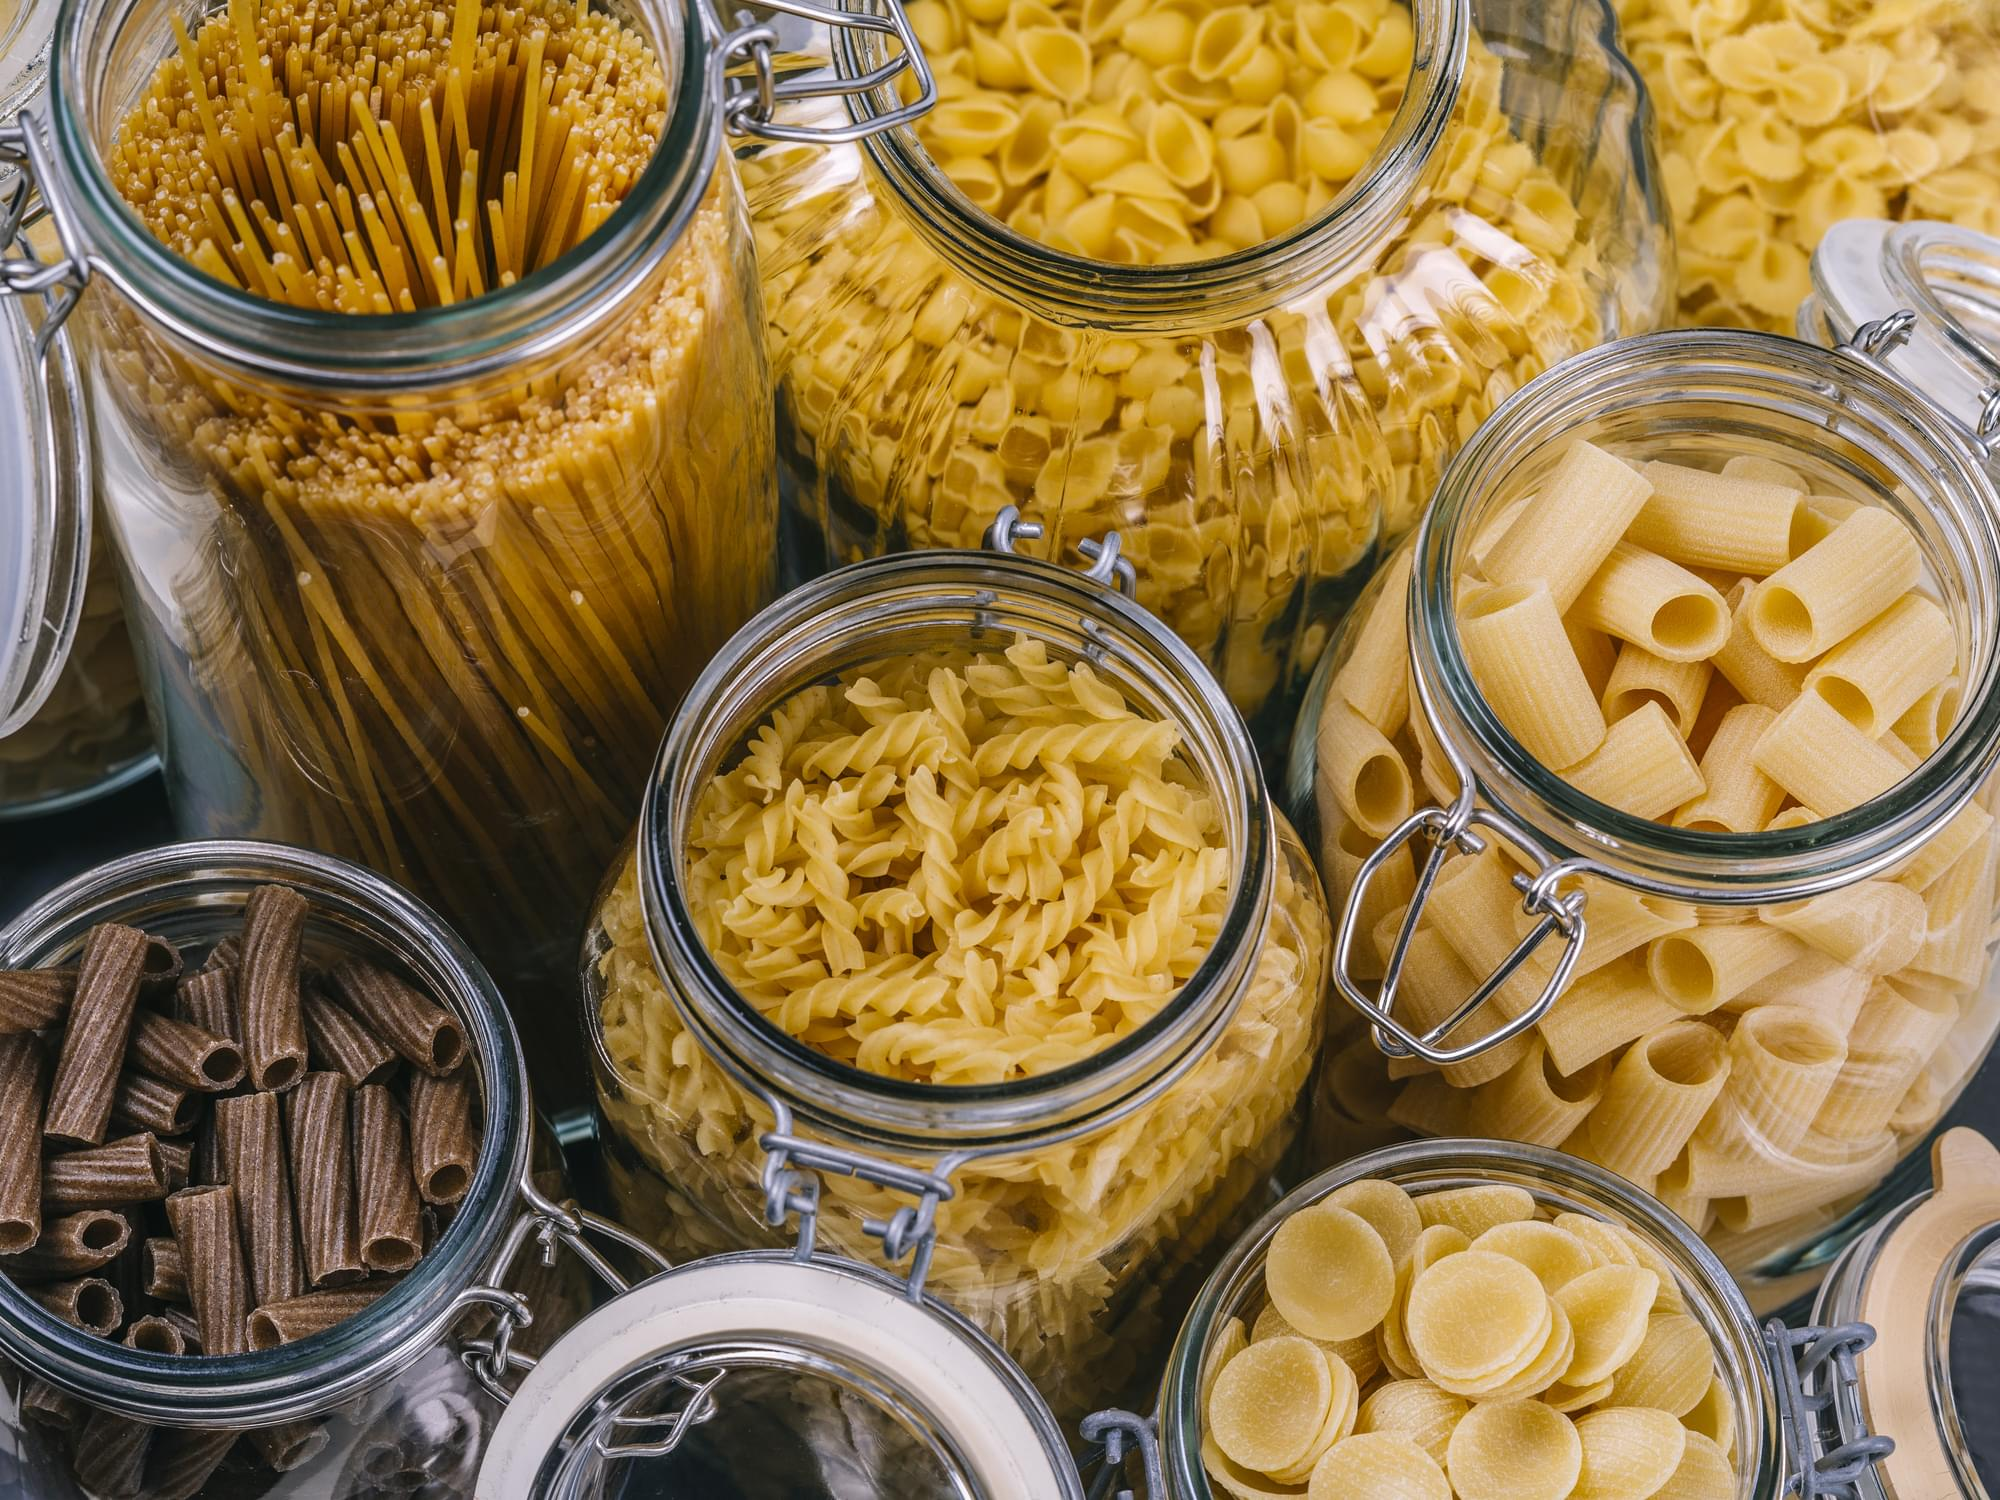 Different pasta in large glass jars